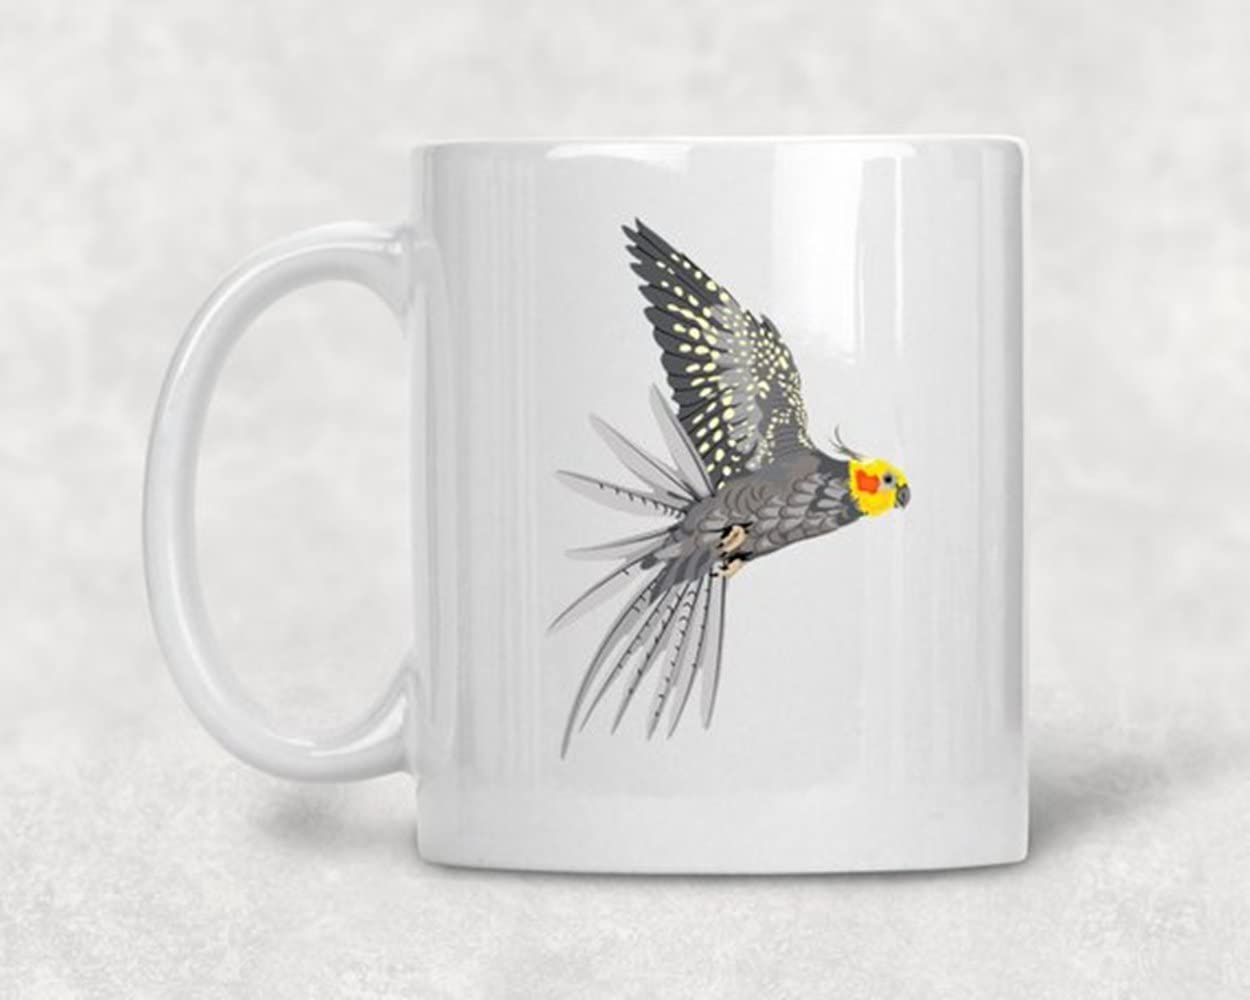 Amazon Com Alicehitmood Cockateil Mug Parrot Gift Cockateil Gift Pet Parrot Companion Bird Pets Parrots Ceramic Coffee Mug Cup 11oz Kitchen Dining